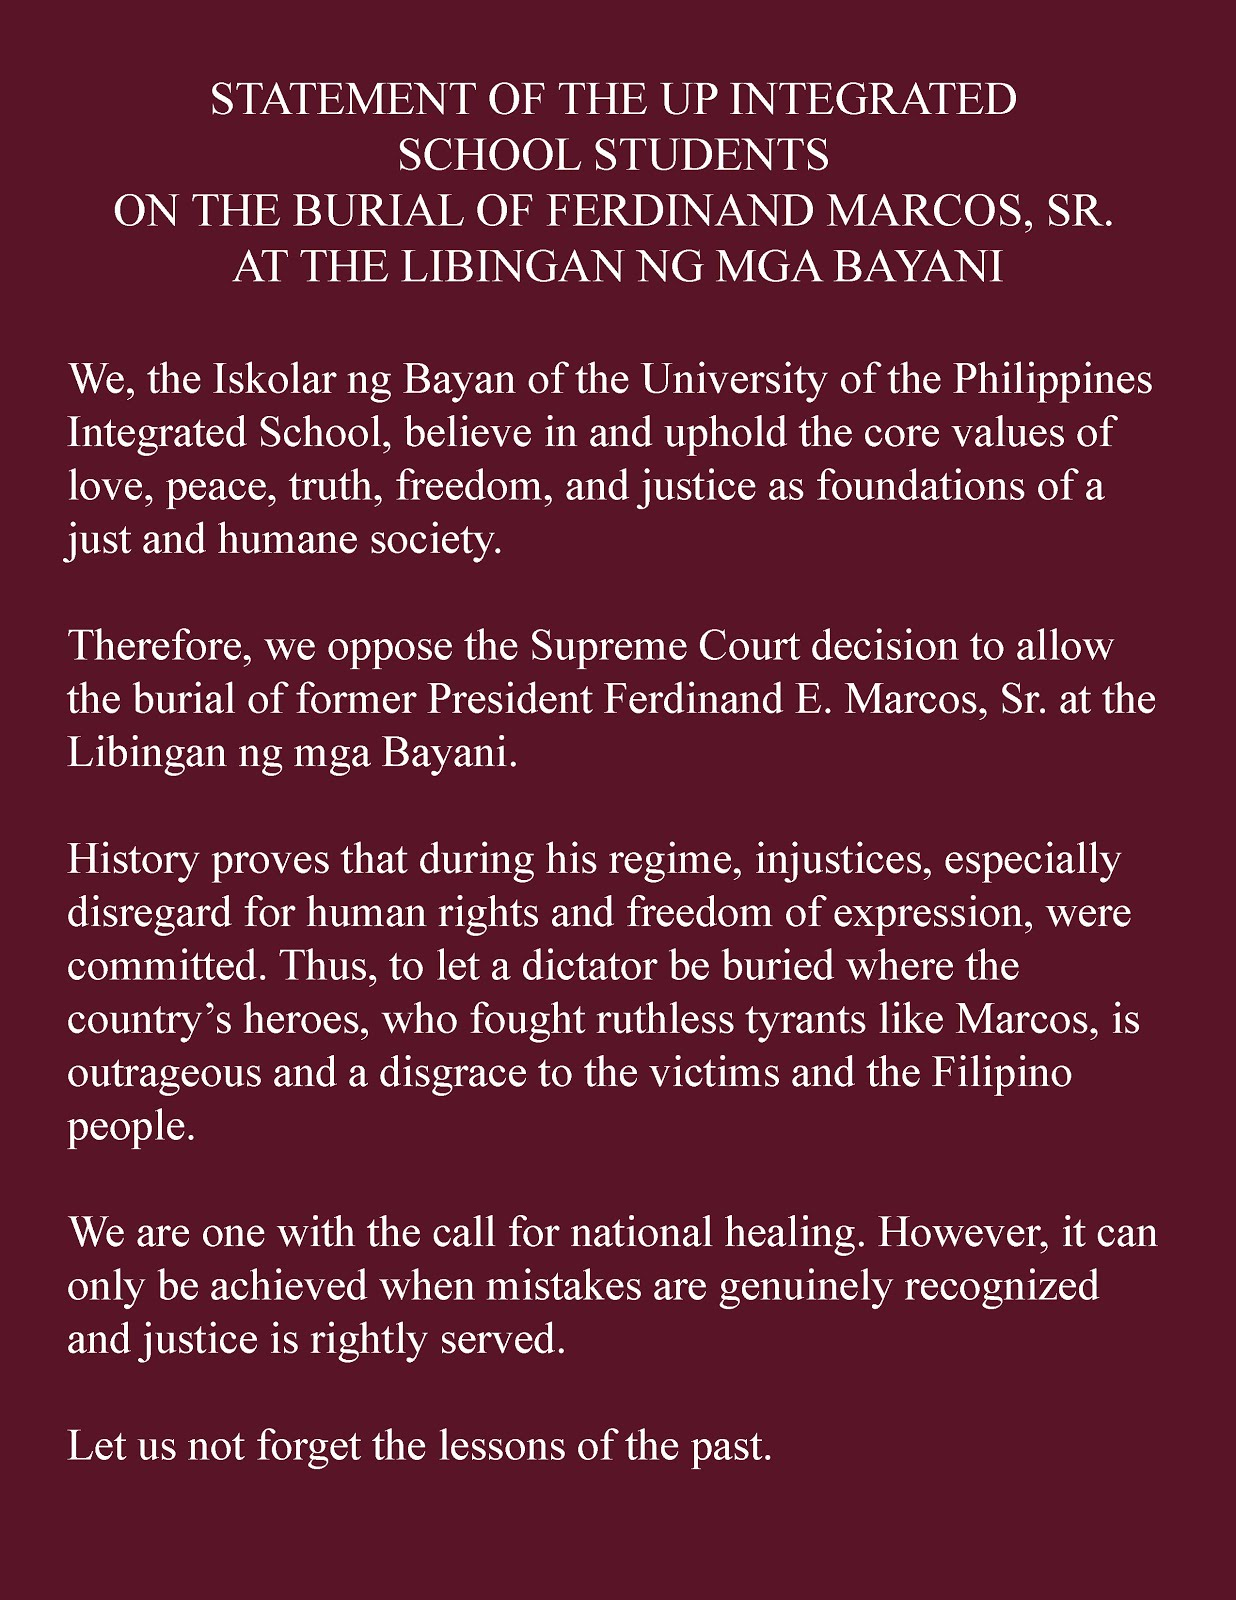 Statement Of The Upis Students On The Burial Of Marcos At The